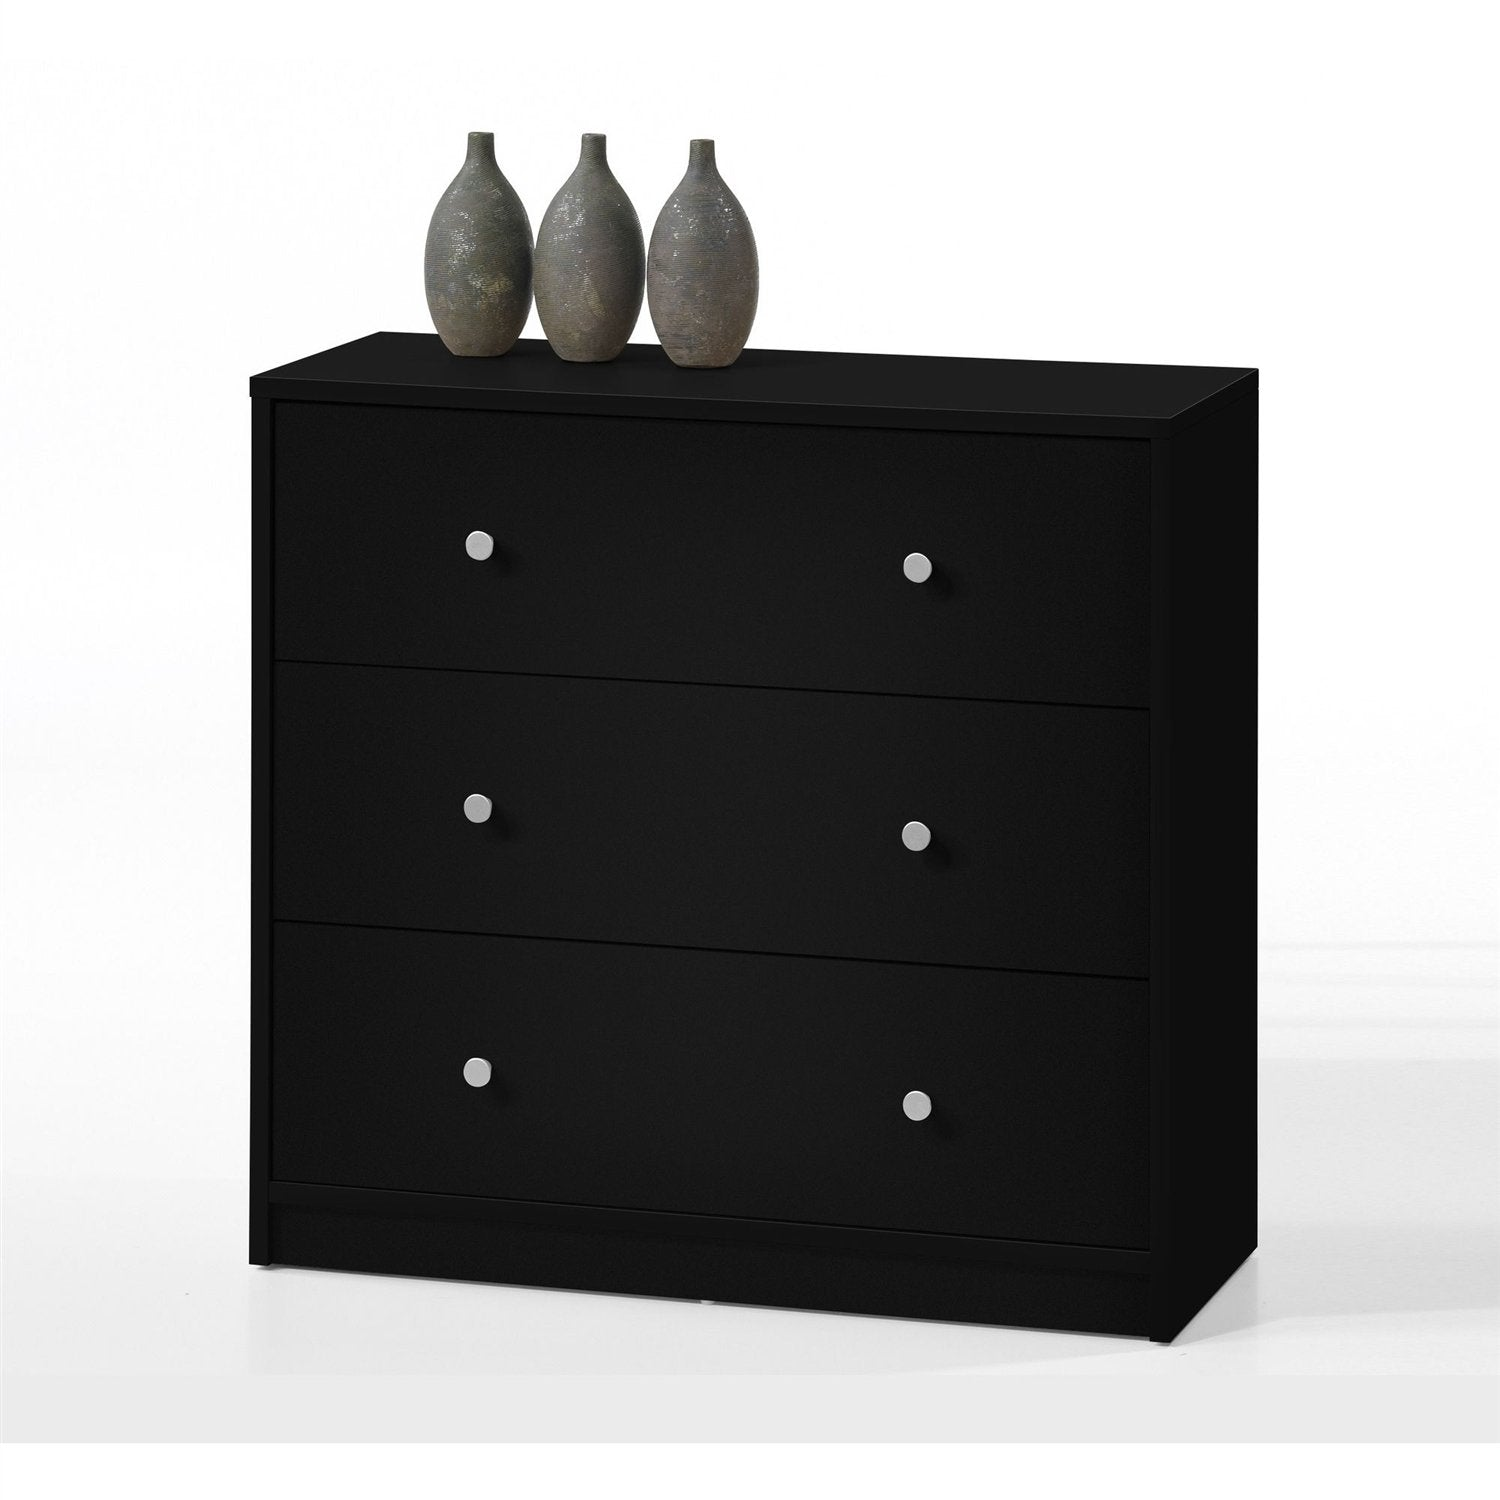 Contemporary 3-Drawer Chest in Black - Made in Denmark